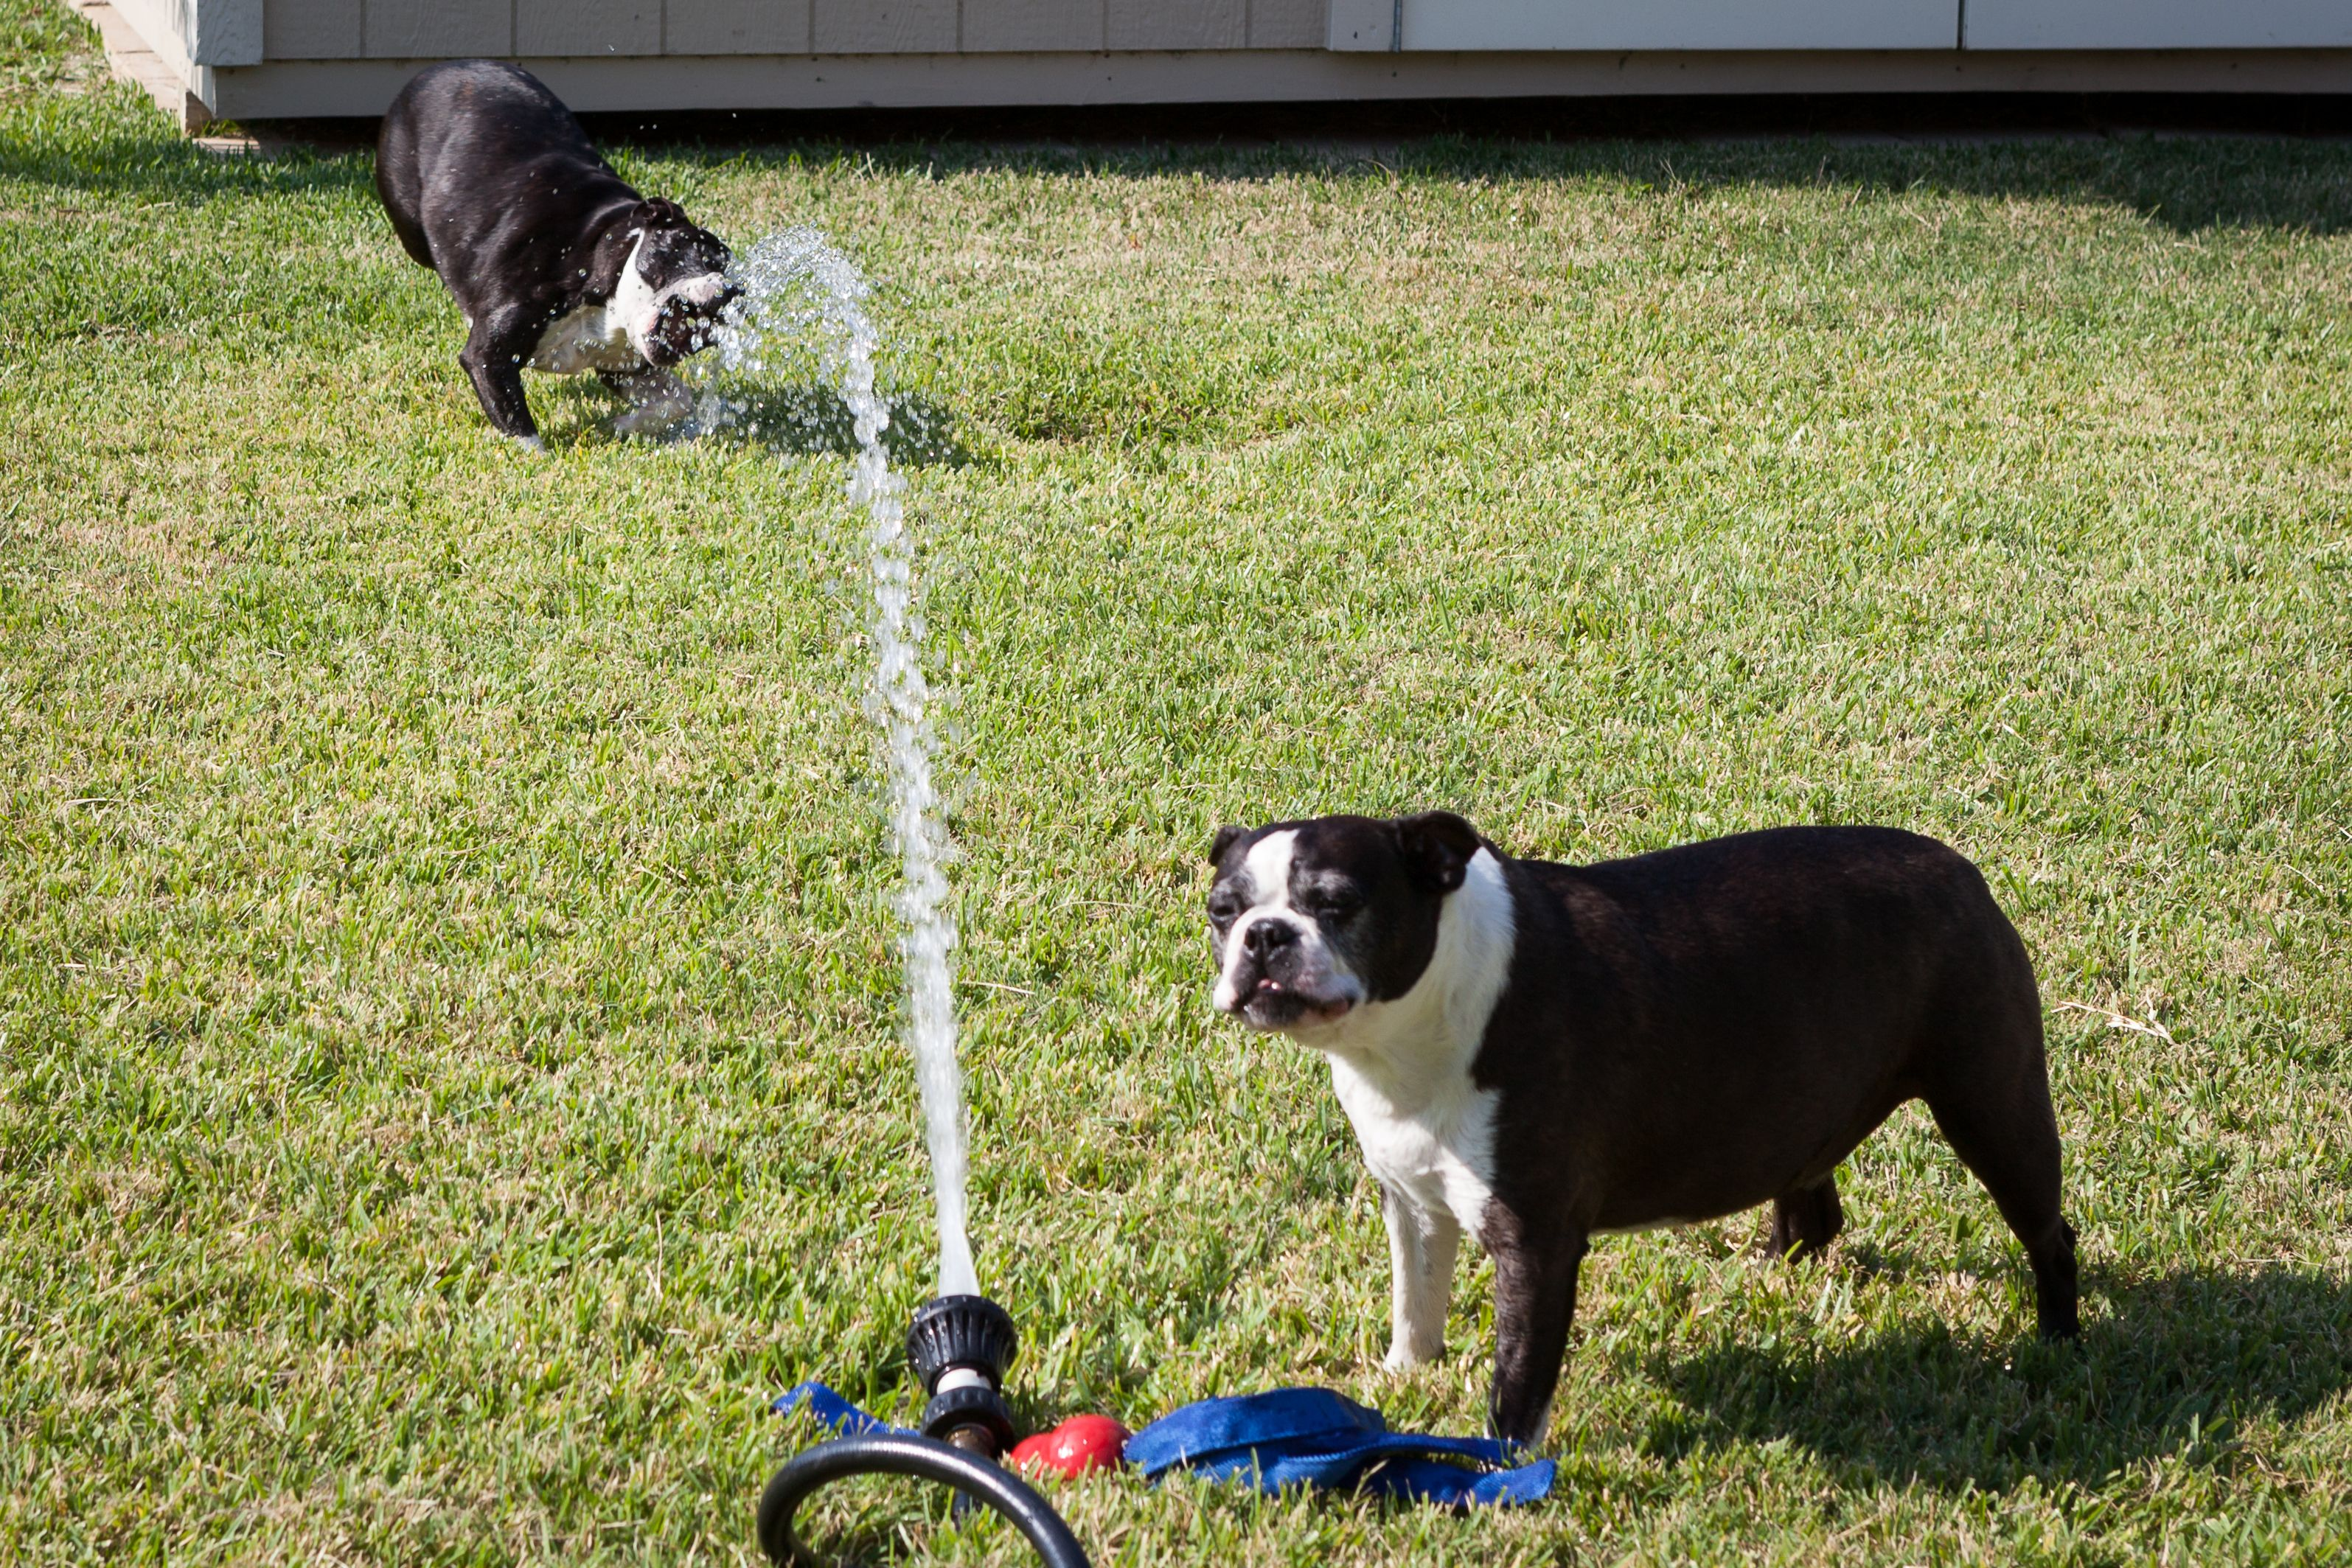 The best way to spend a hot day in Texas! Boston terrier